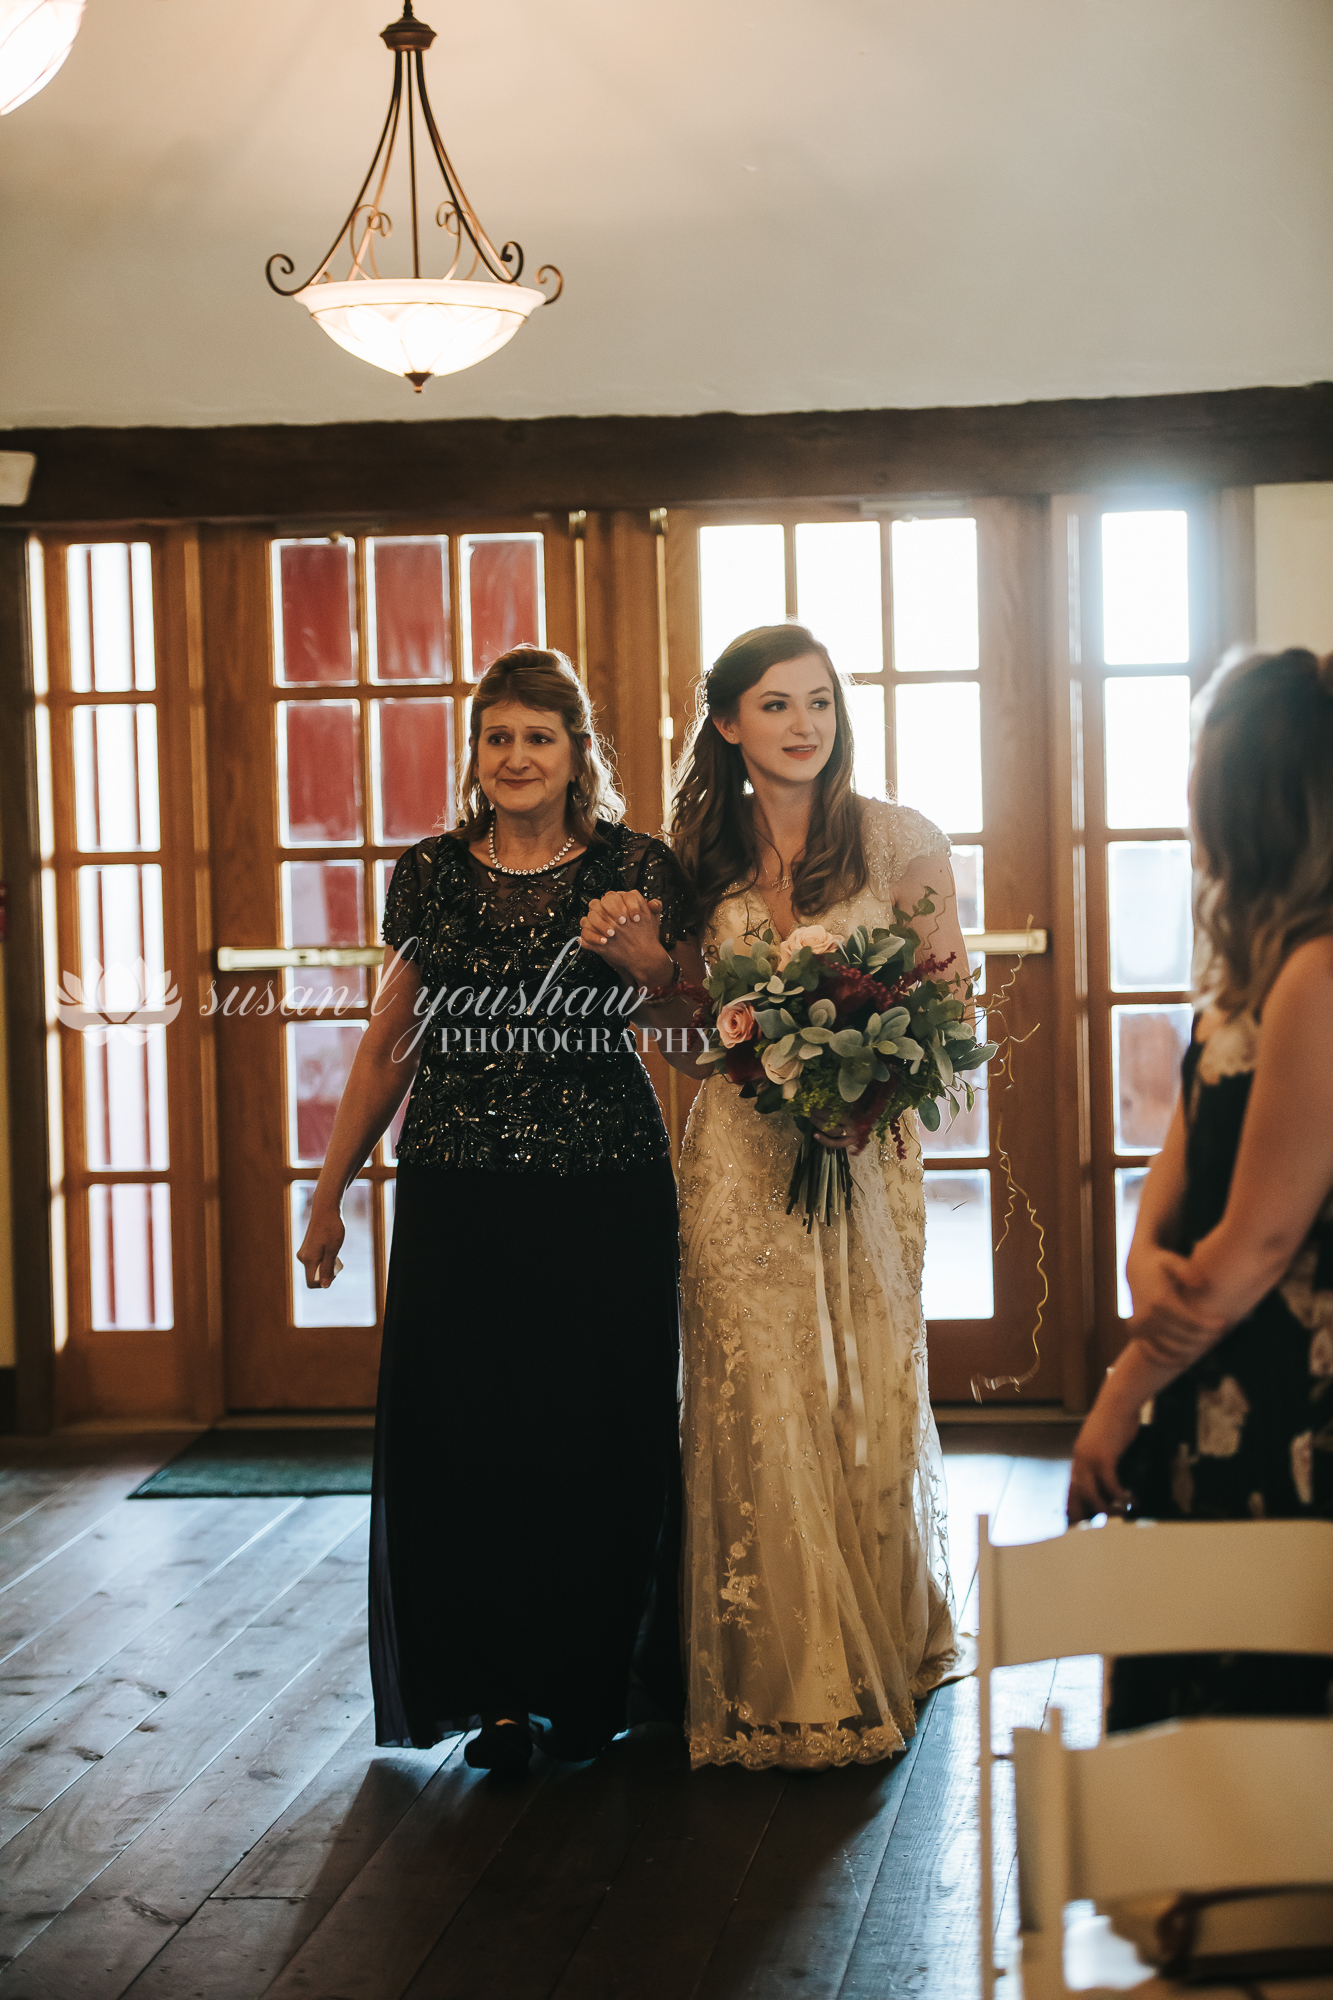 Chynna and John Wedding 05-18-2019 SLY Photography-94.jpg